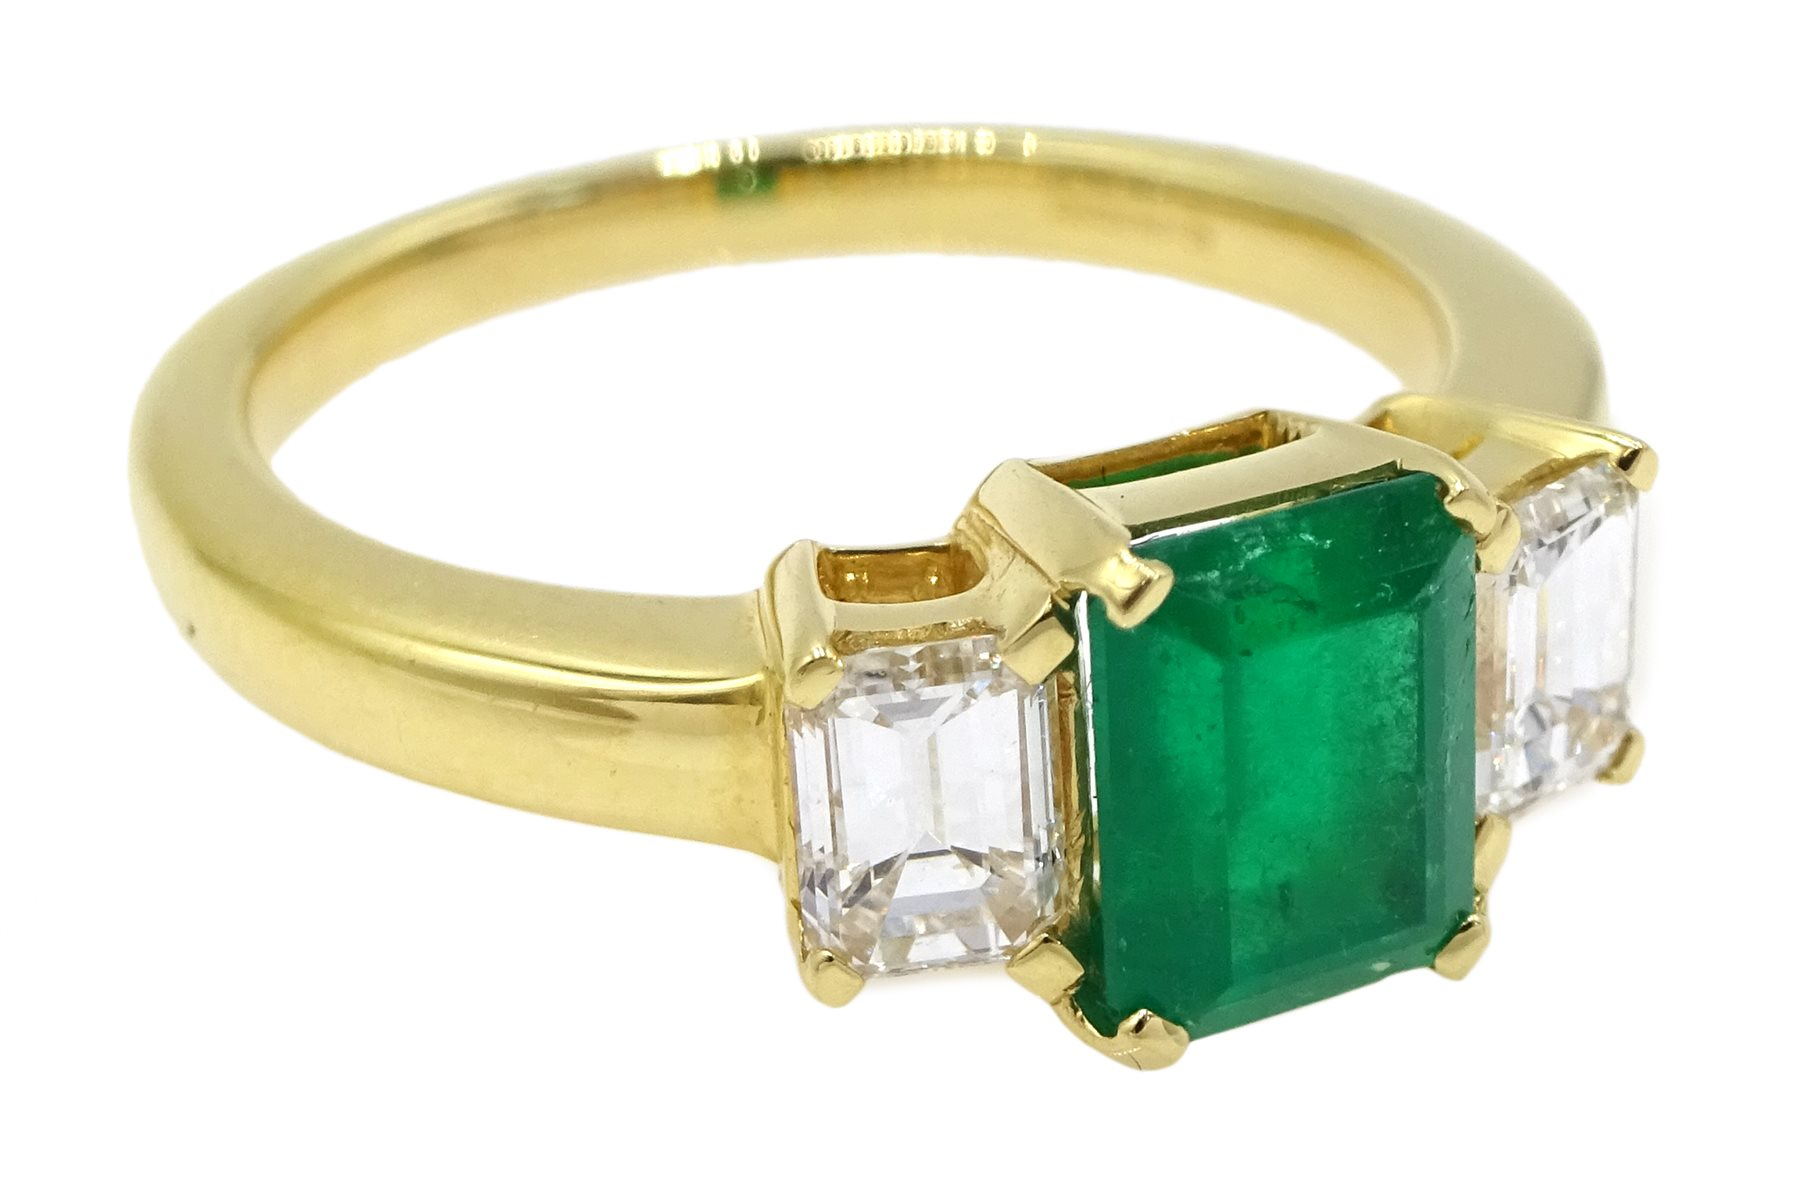 18ct gold emerald and baguette cut diamond ring - Image 3 of 4